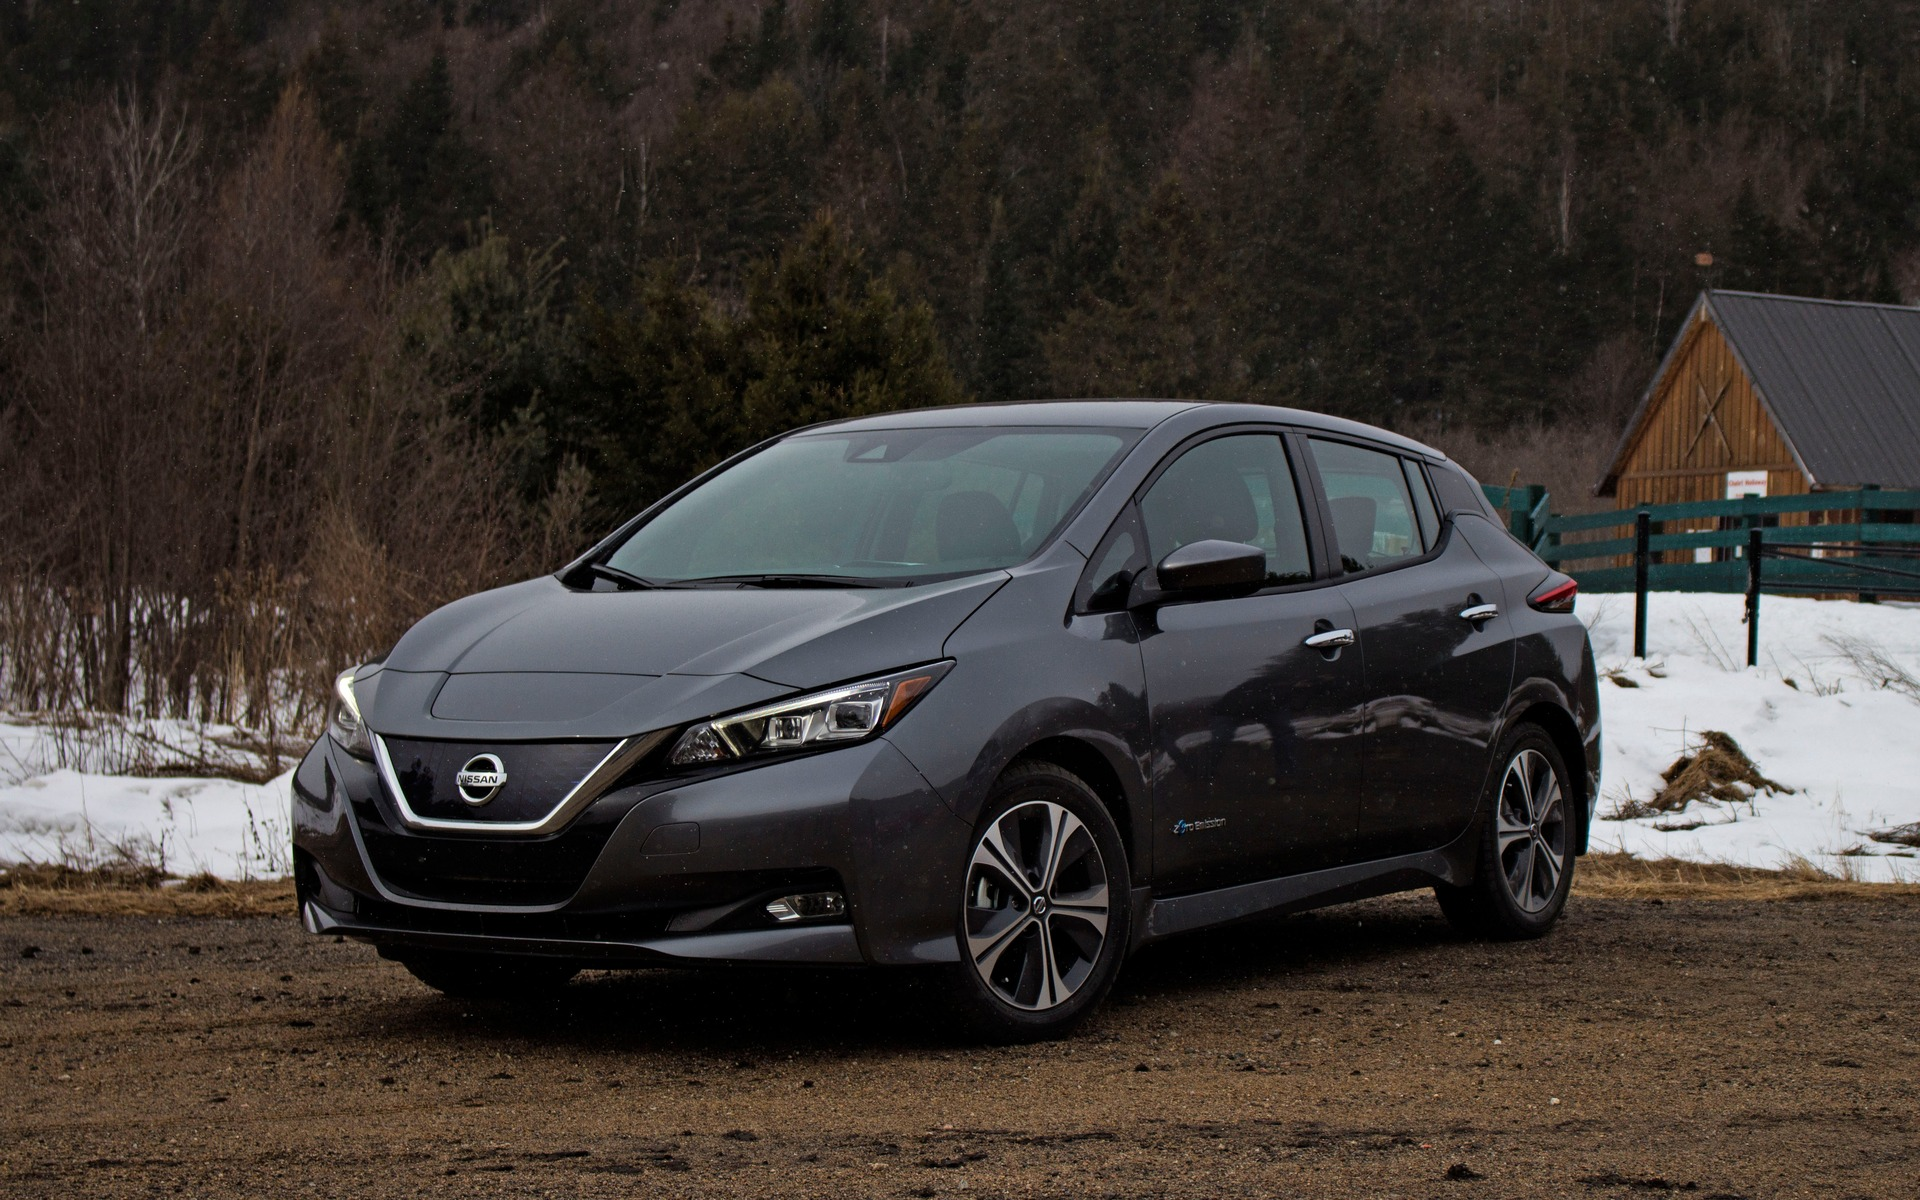 2018 Nissan LEAF: The People's Electric Car - The Car Guide